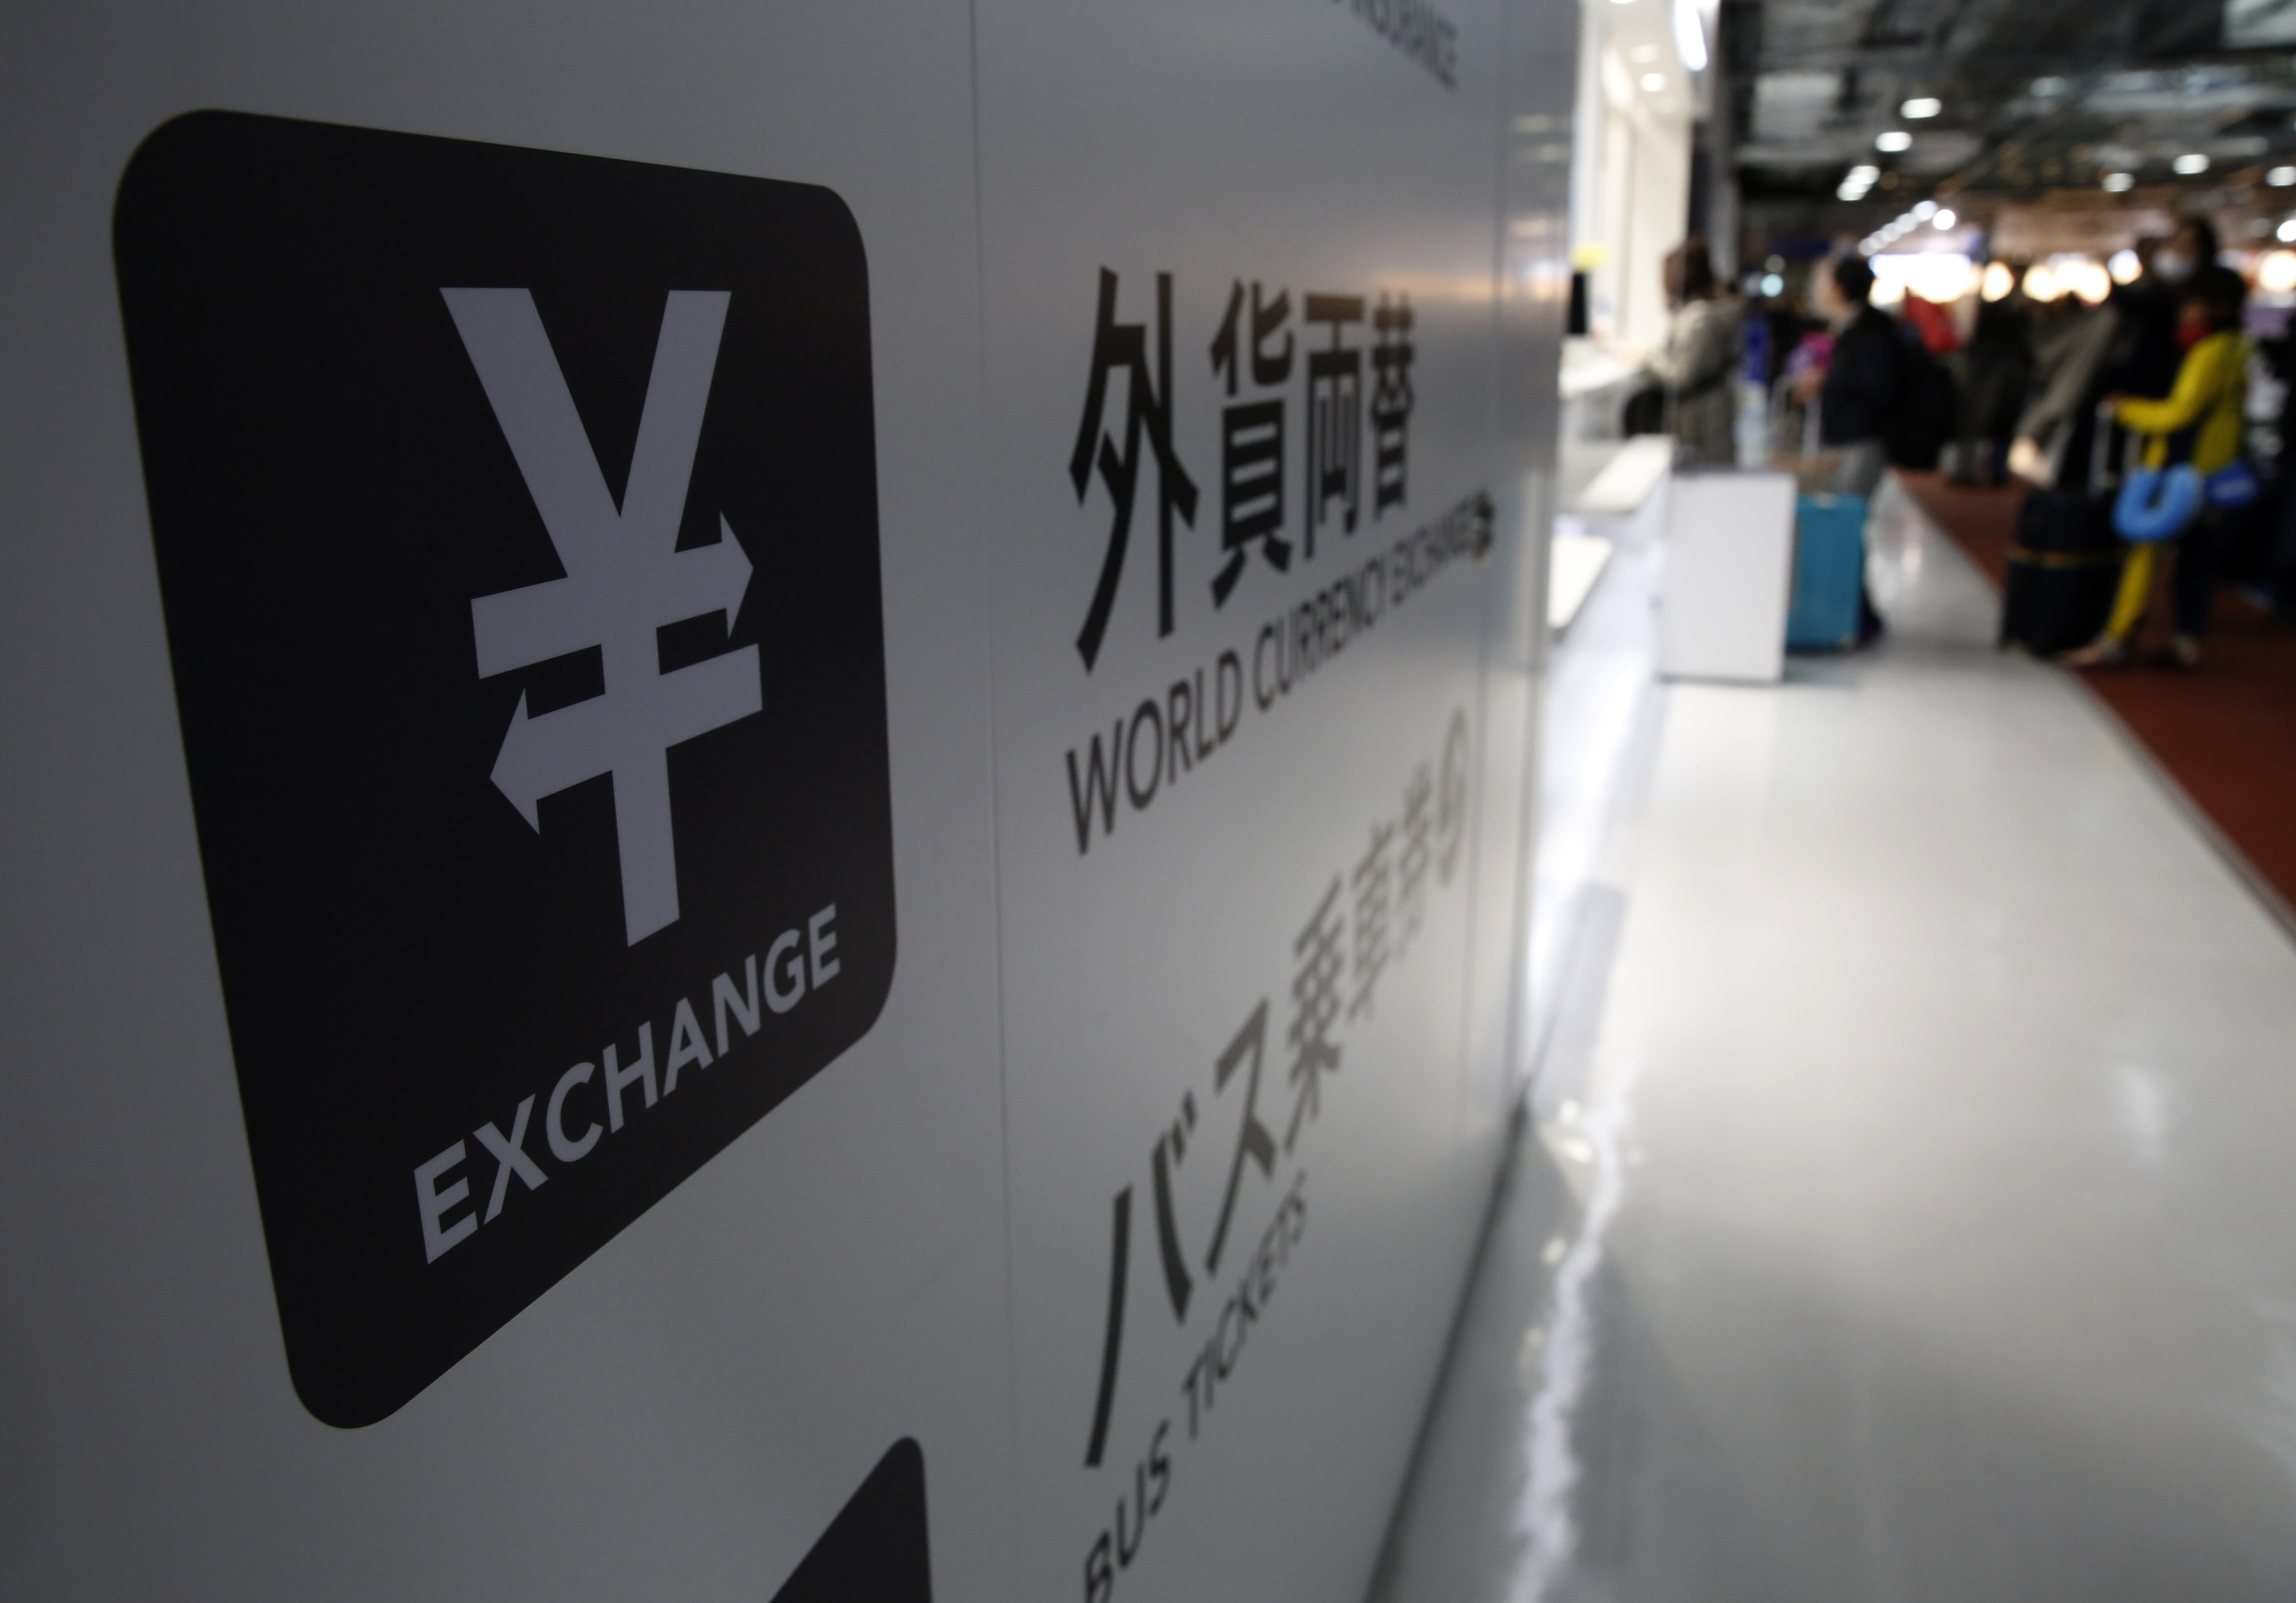 A Japanese Yen currency sign (L) is seen at a currency exchange office as people line up to exchange money at Narita International airport, near Tokyo, Japan, March 25, 2016. The dollar was on track on Friday for a weekly gain of over 1 percent against a basket of currencies after a chorus of U.S. Federal Reserve officials signalled more interest rate increases than the market had been pricing in. REUTERS/Yuya Shino